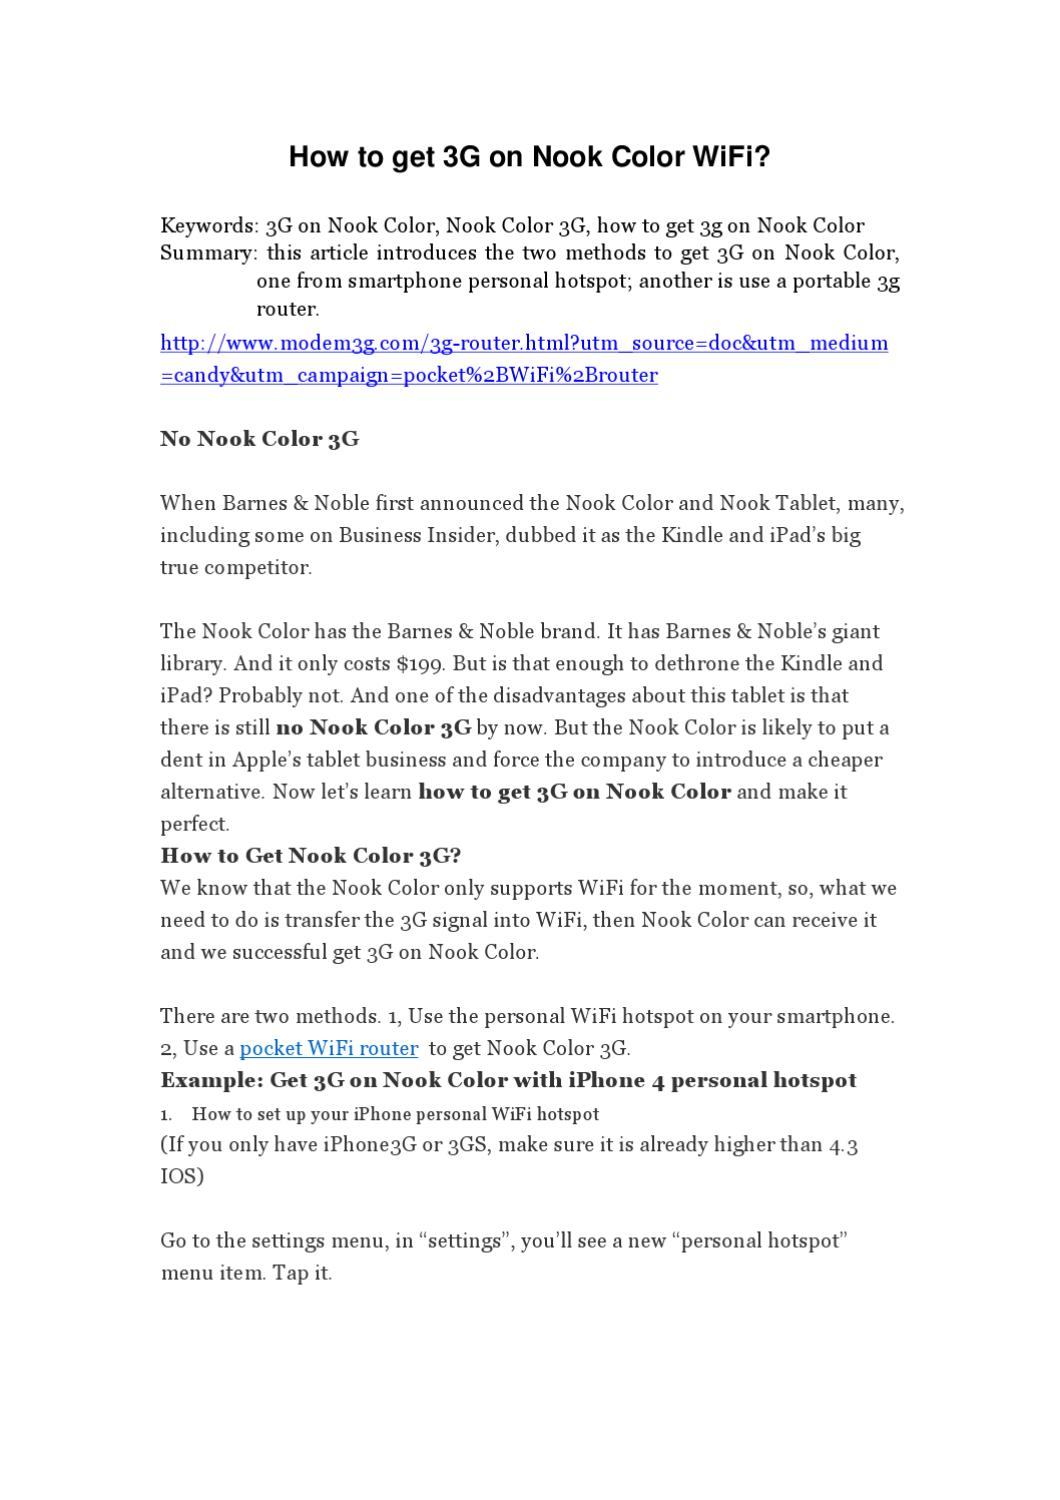 How to get 3G on Nook Color WiFi? by candy yang - issuu